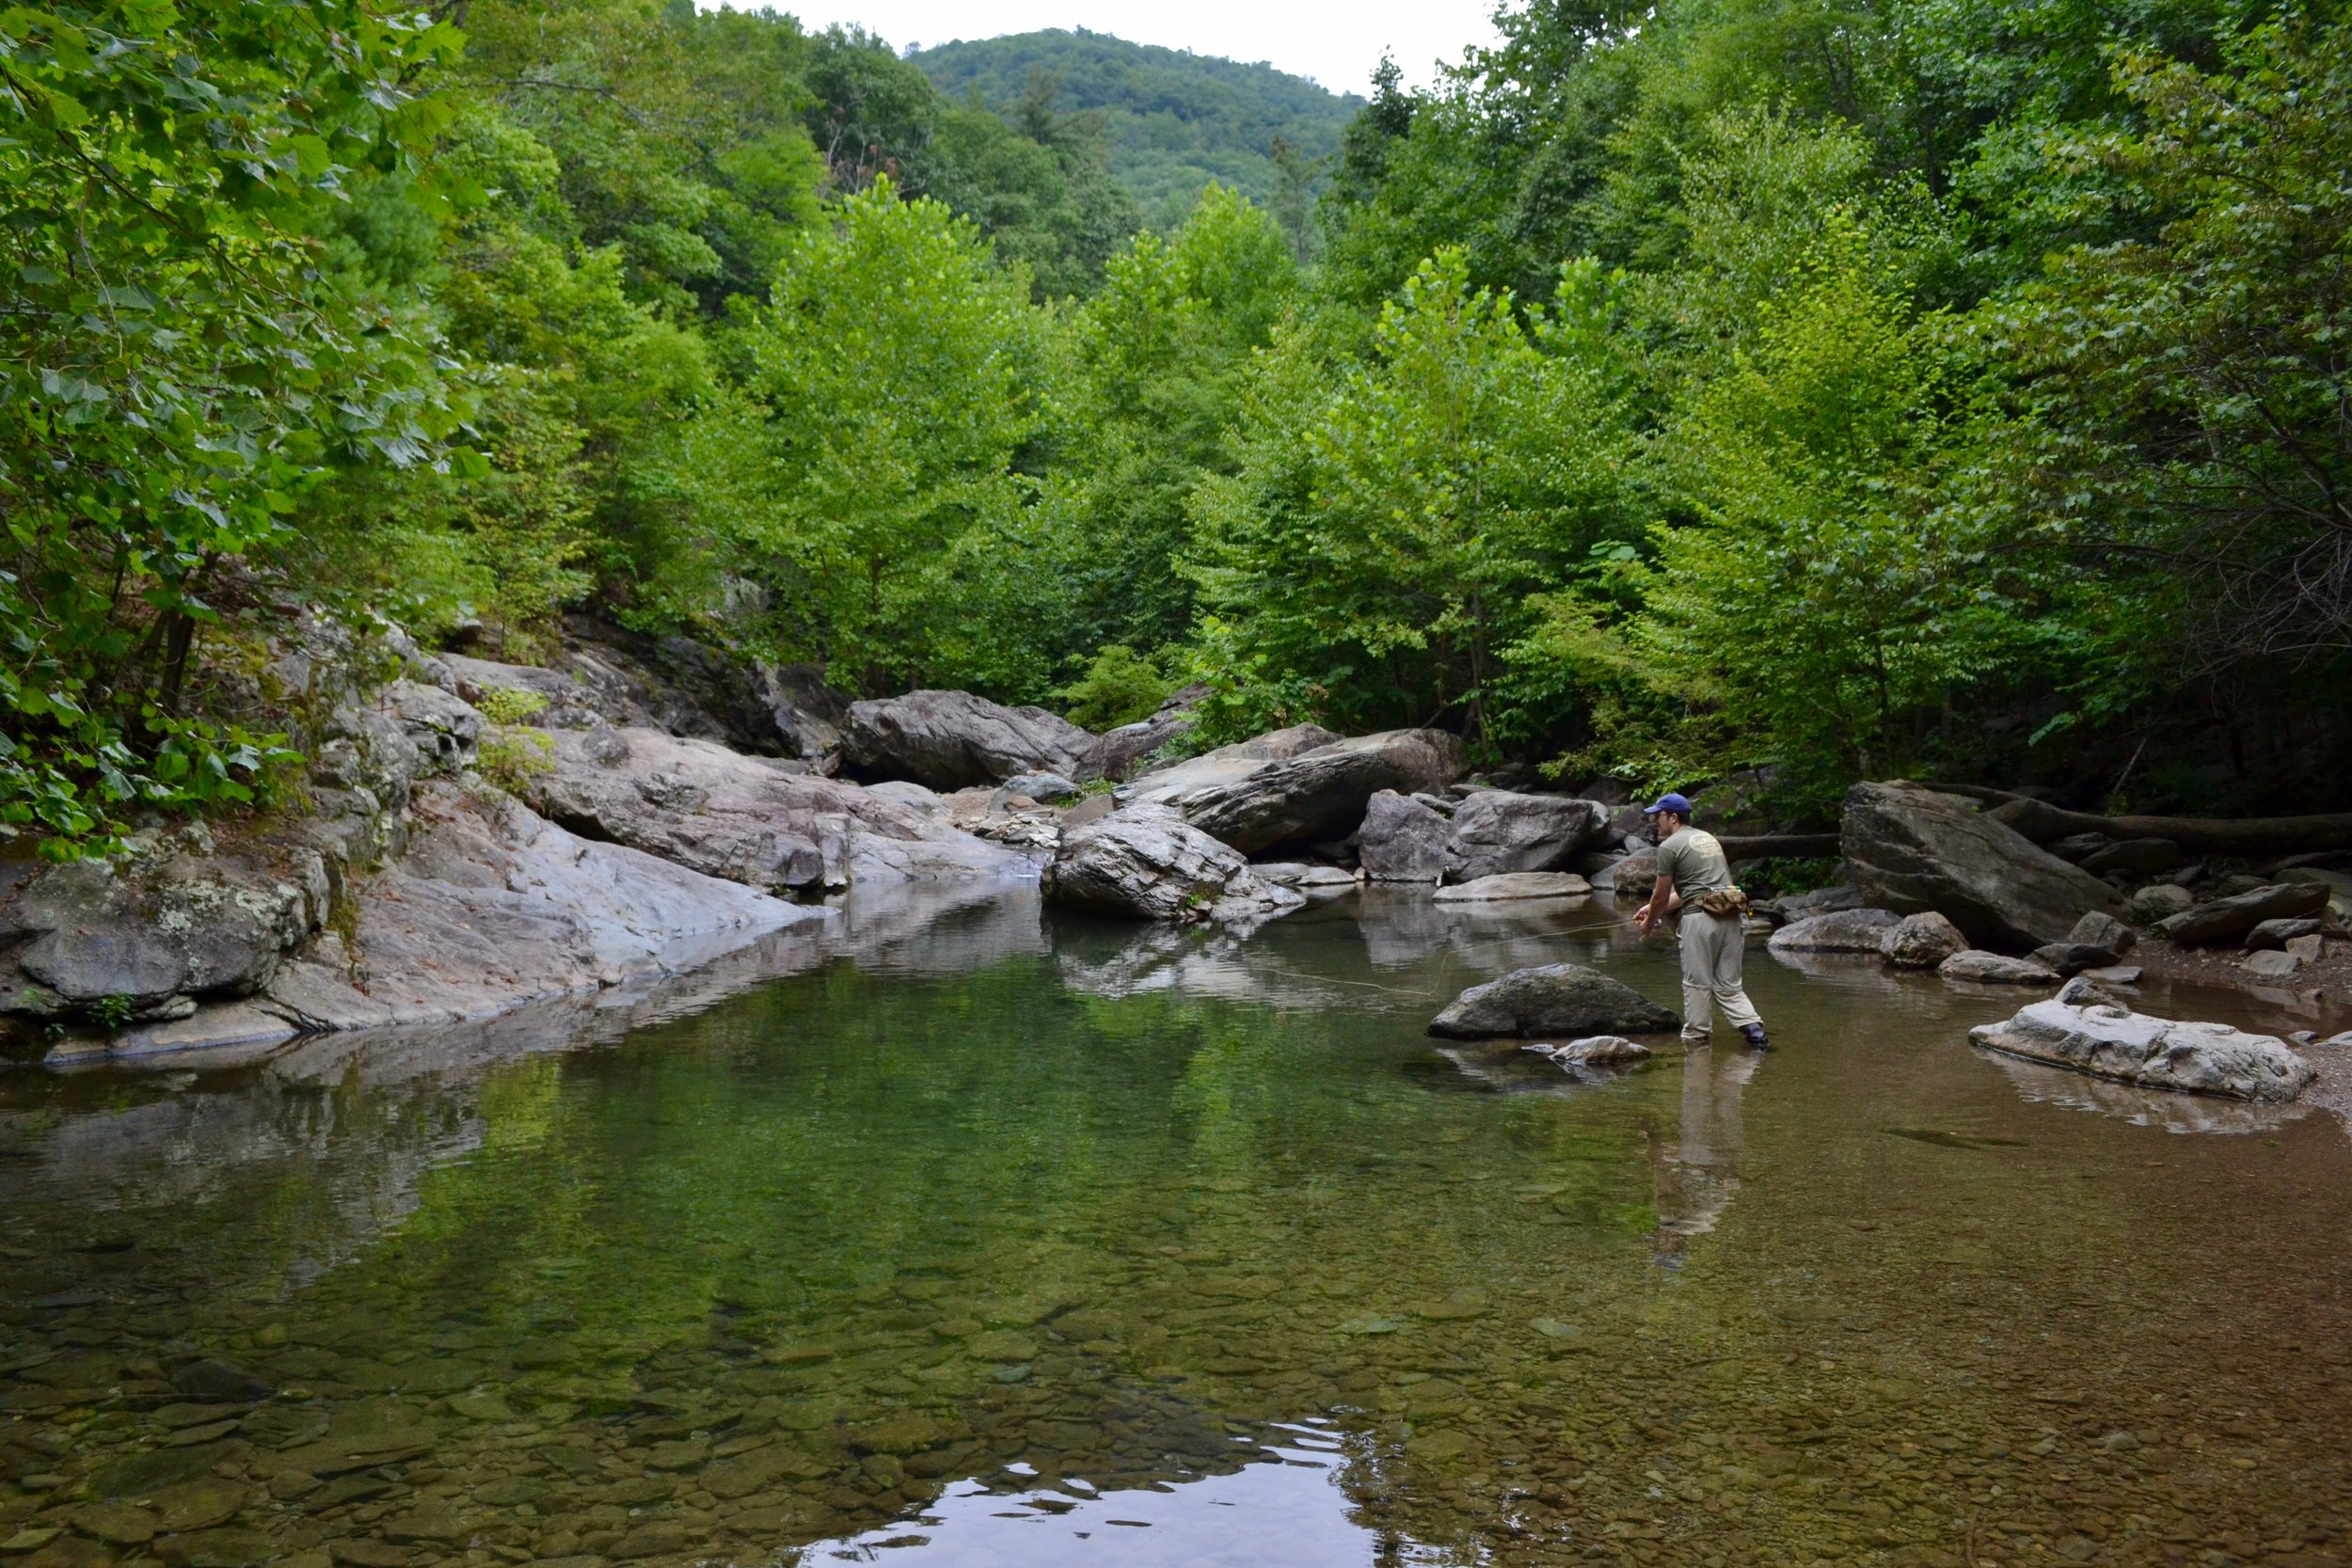 A wide pool on a well-known Virginian small stream. Typically it draws a lot of swimmers, but this day there was only my wife, I, and some spooked brook trout.